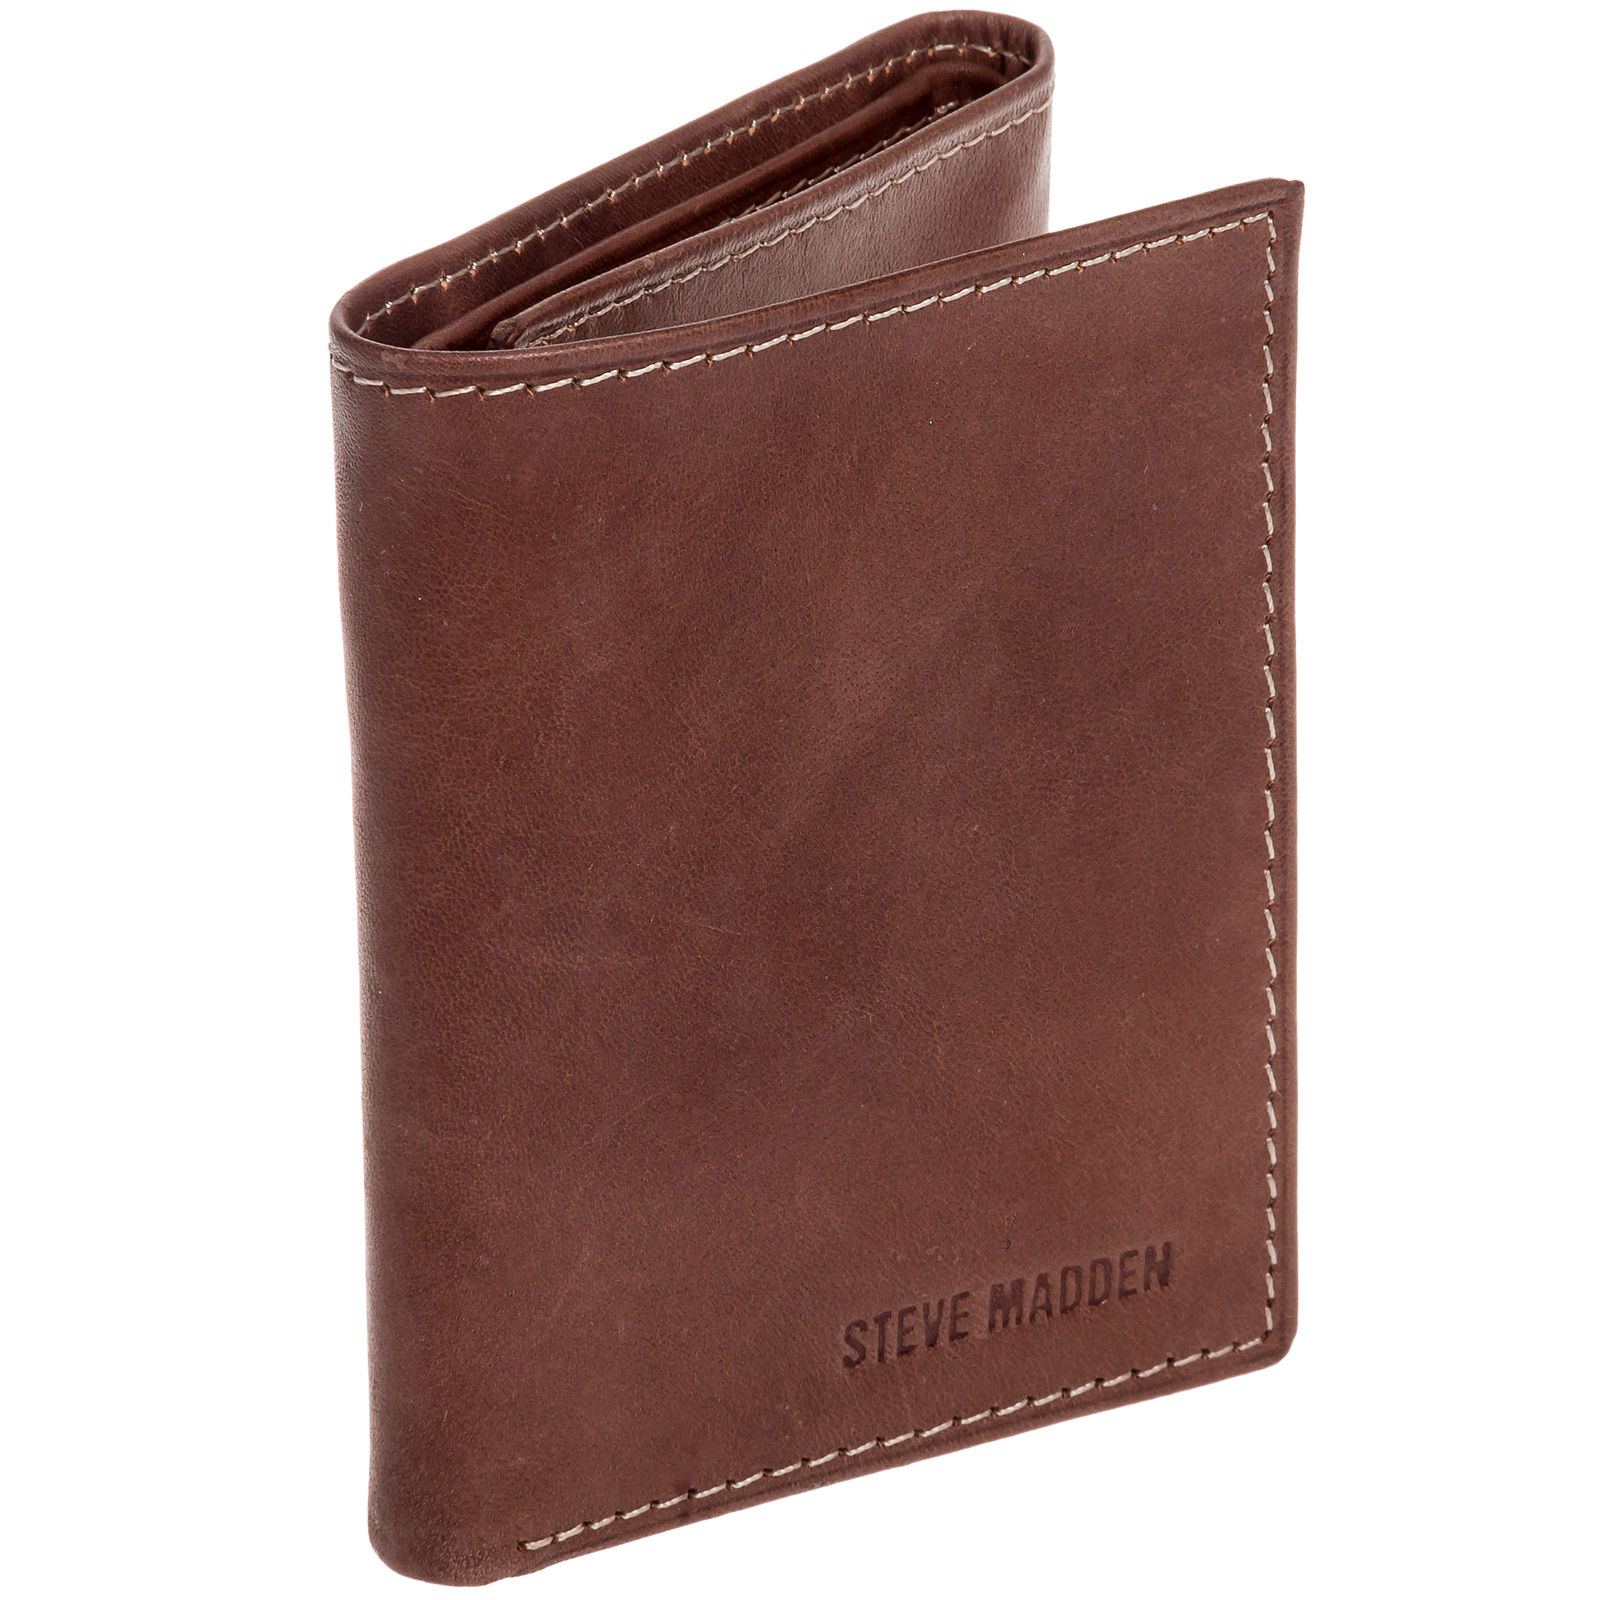 484cad7261a4 Genuine Mens Leather Trifold Wallets | Stanford Center for ...